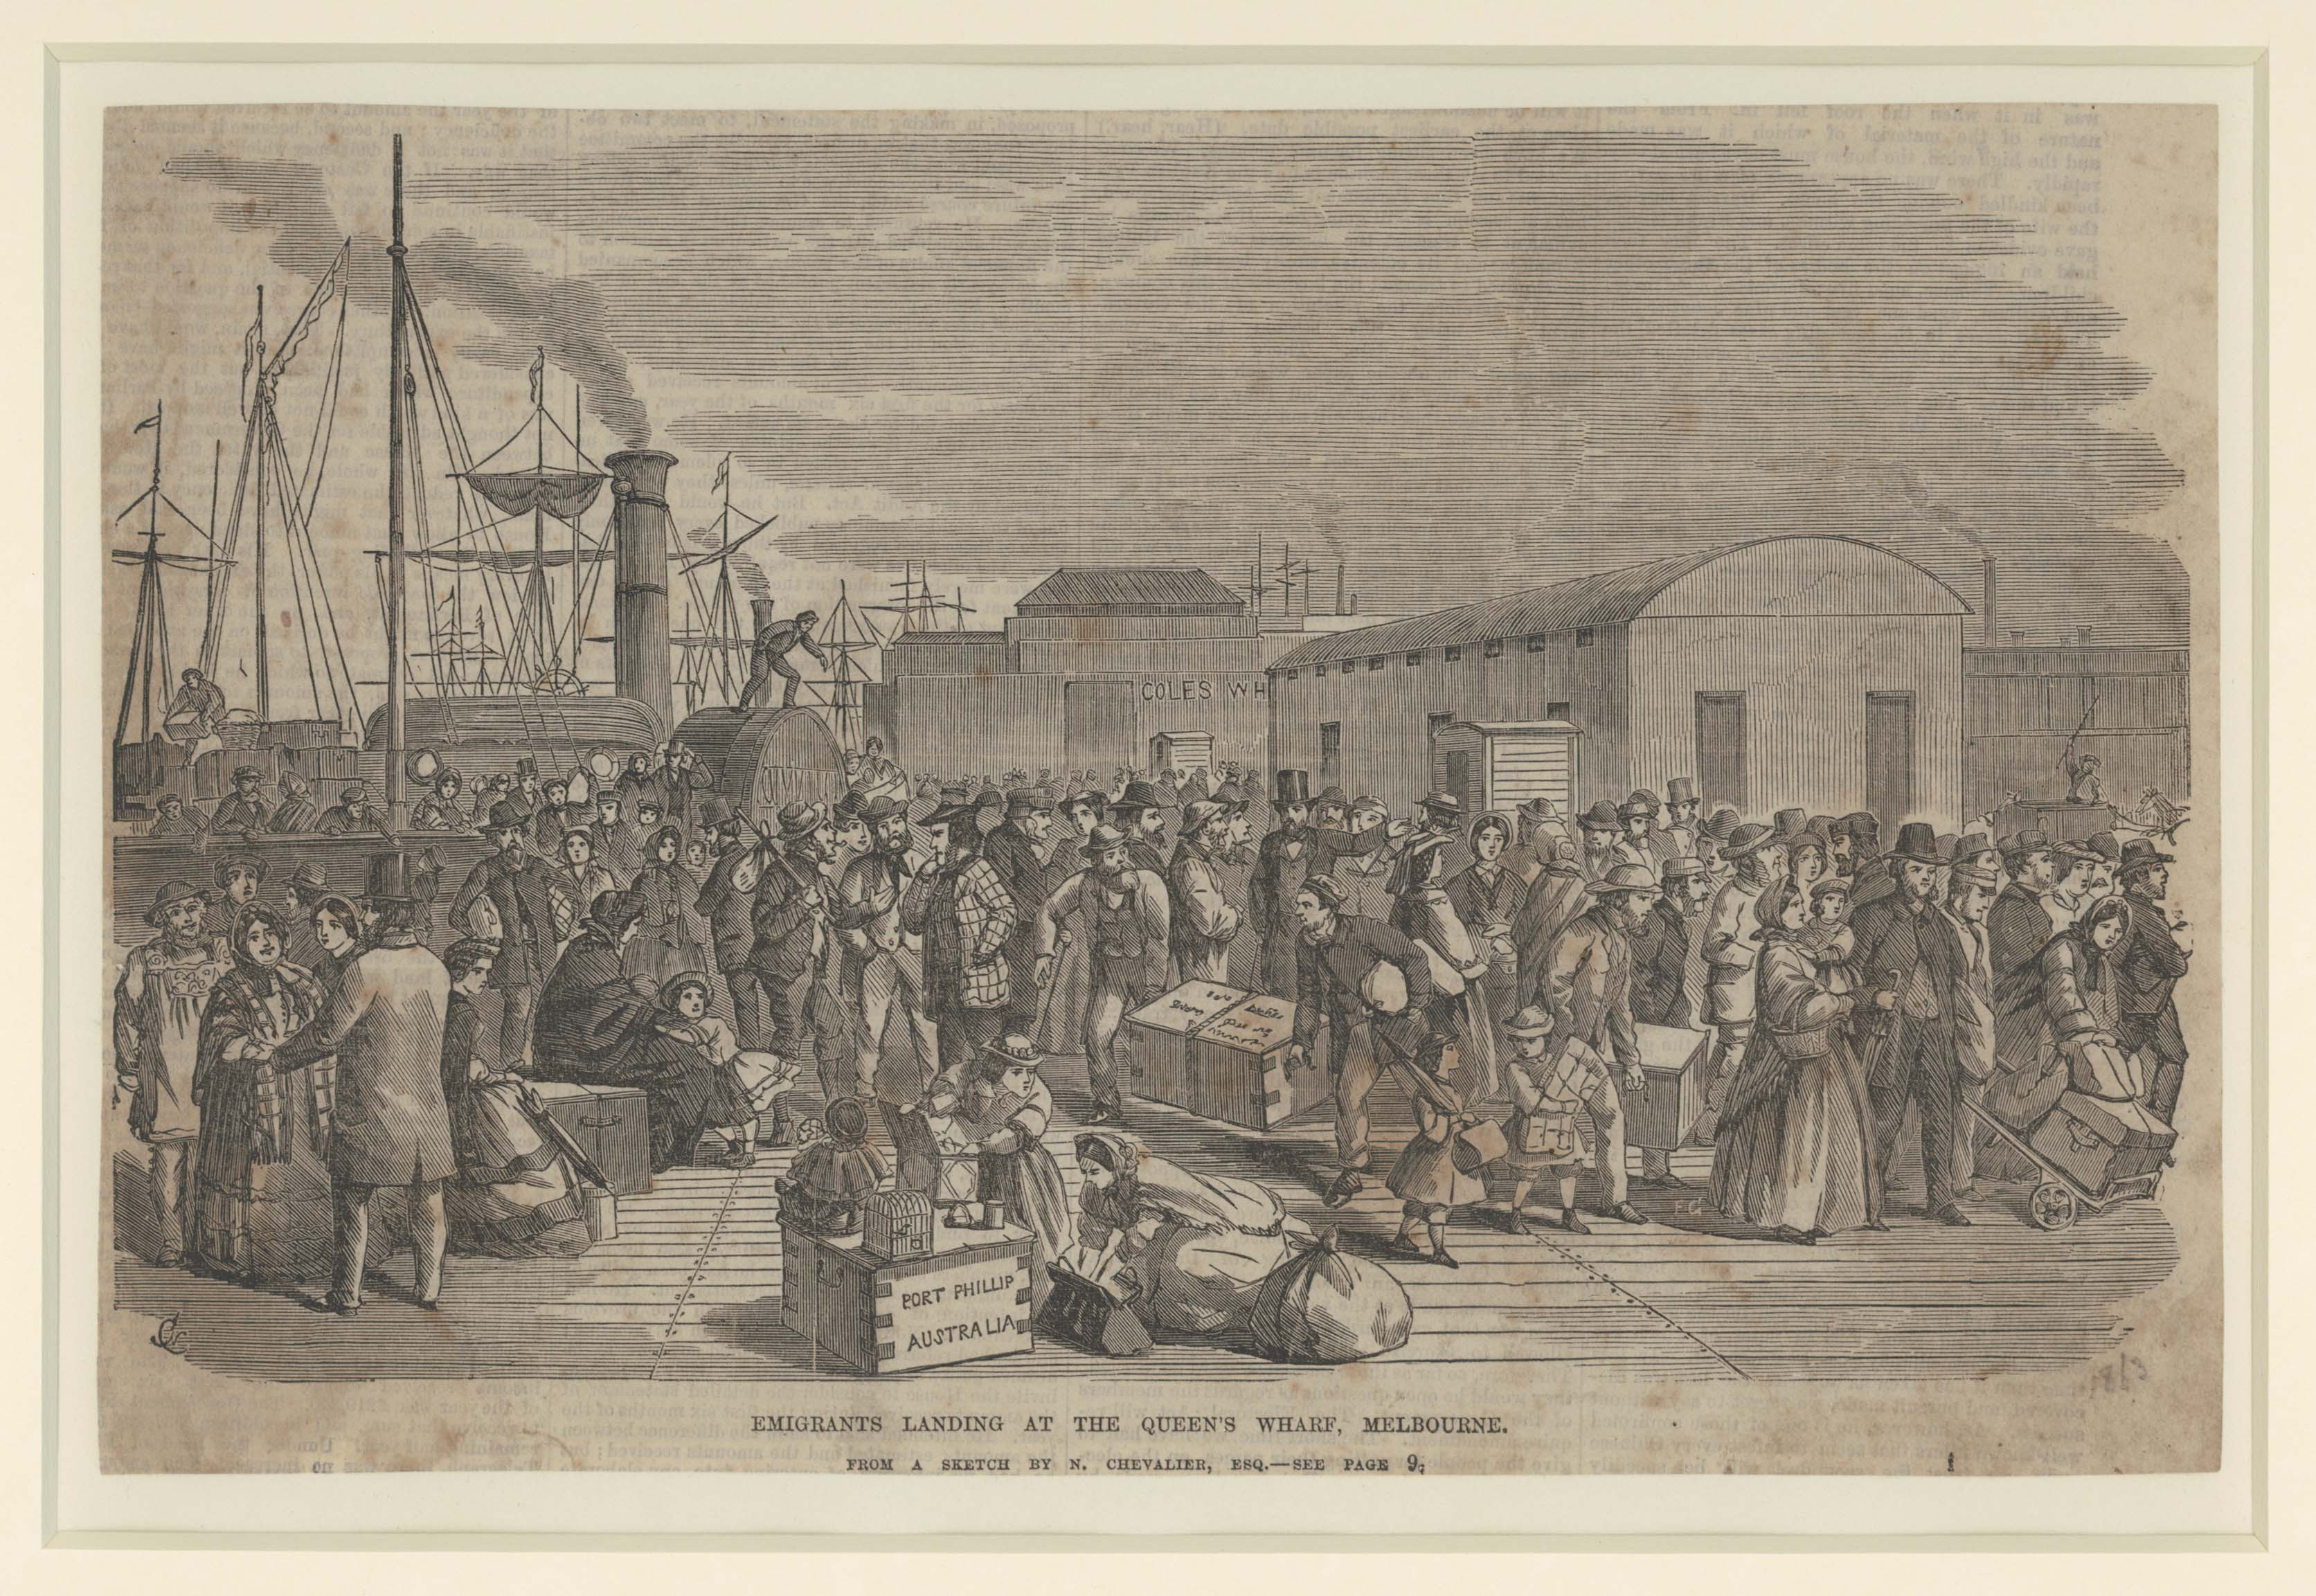 Emigrants Landing at the Queen's Wharf, Melbourne, by Frederick Grosse.